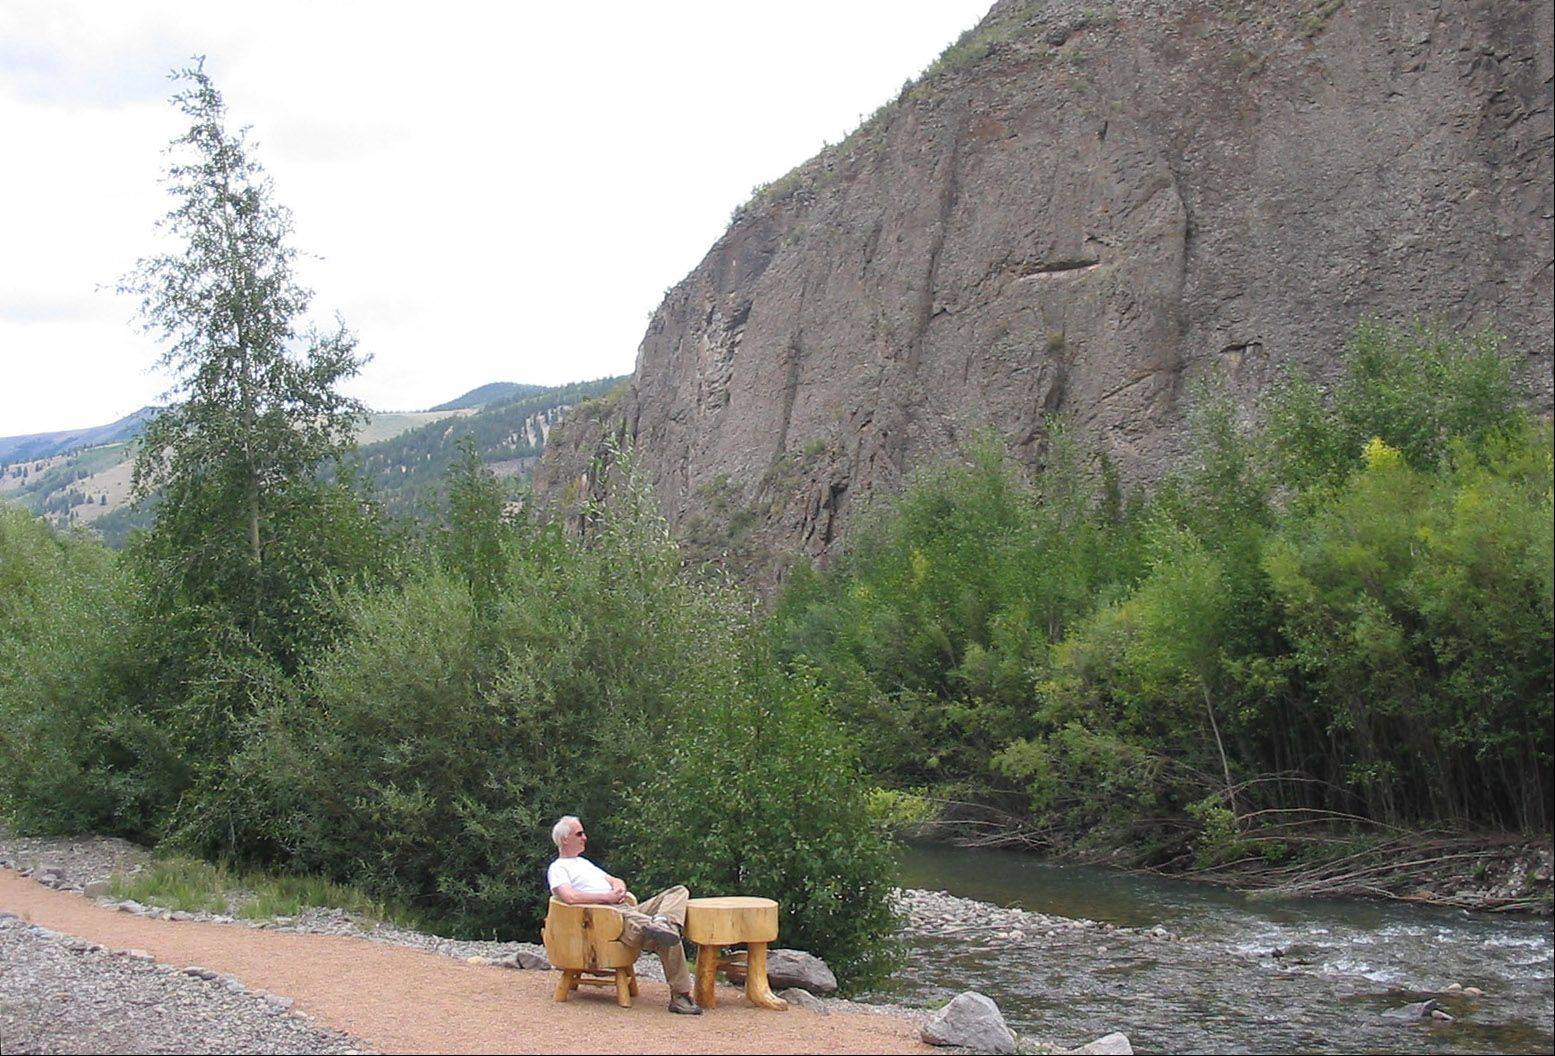 A self-portrait by Steve Parmelee as he sits at a hand-carved table and chair alongside a stream near Lake City, Colorado on September 3, 2005.